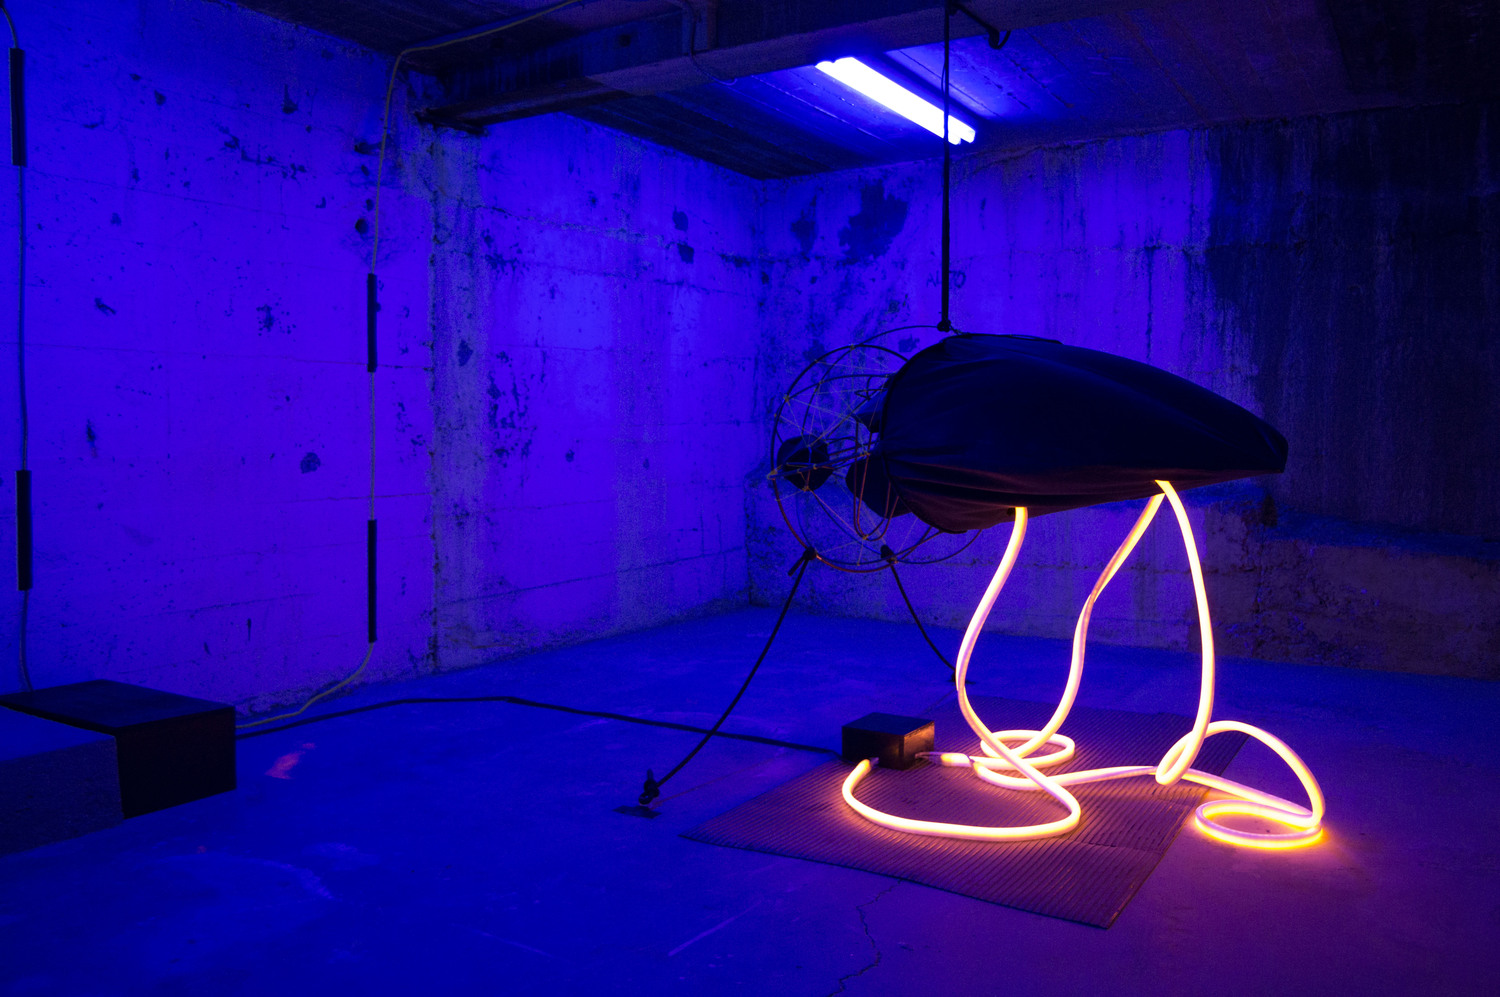 Pamela Leszczynski, Big Mama , Installation work.Metal, wood, fluorescent lighting fixtures, string (yellow and black), neon rope lights, velveteen, Plexi-glass, Arduino and electronic components, air pump, digital metronomes, tubing, clamps, plastic bag.Dimensions of  Big Mama : 5' x 2' x 2'